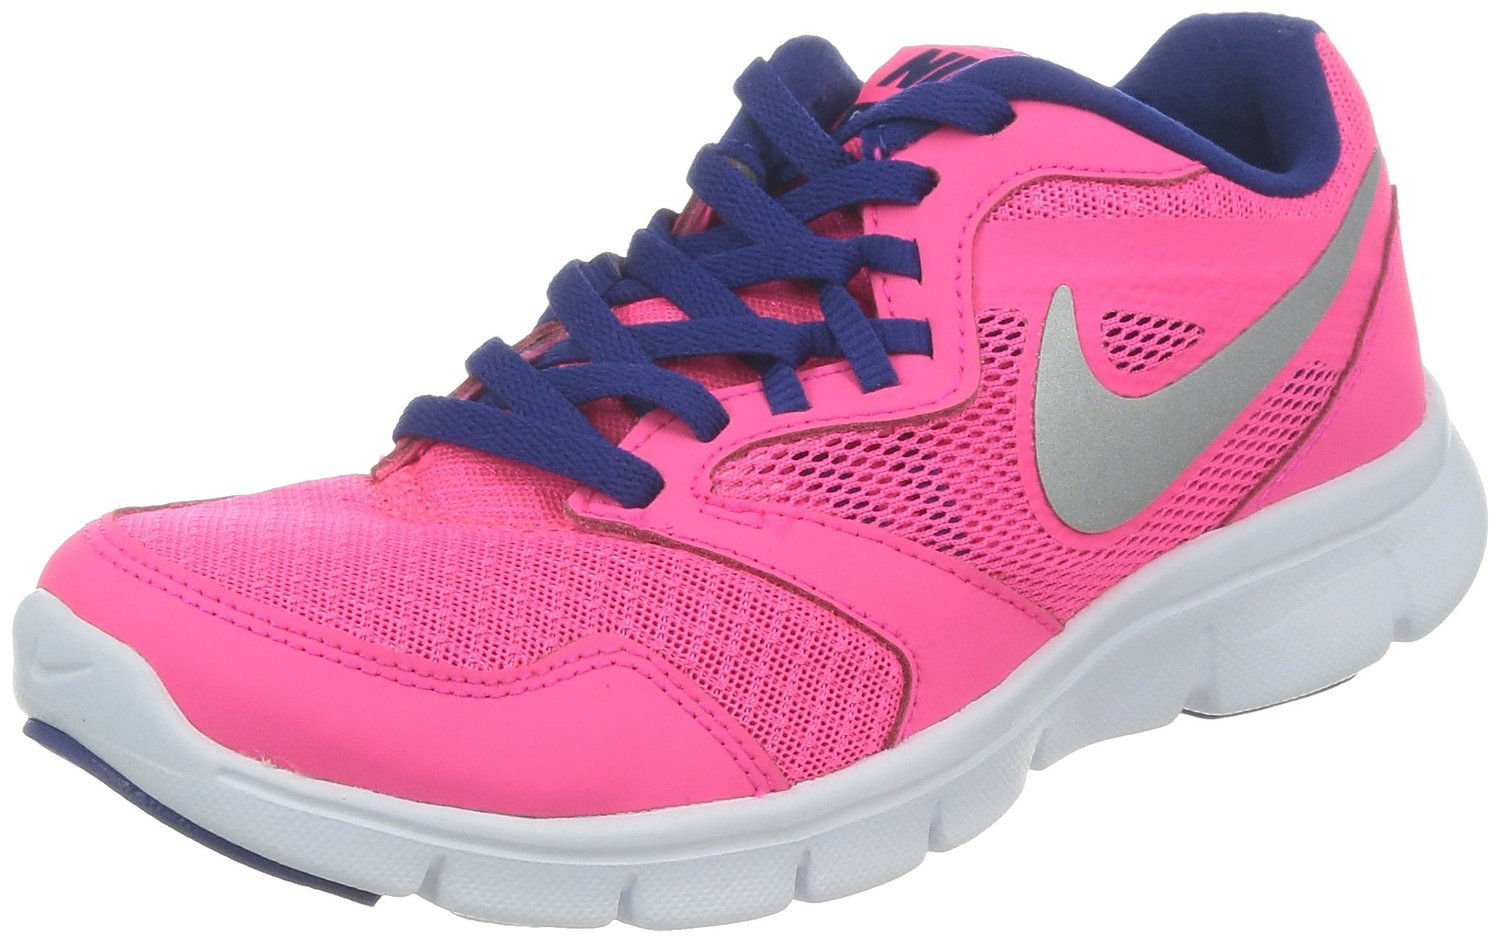 a3313789d5b1c Nike Girl s Flex Experience 3 Athletic Shoes-Hyper Pink Metallic ...